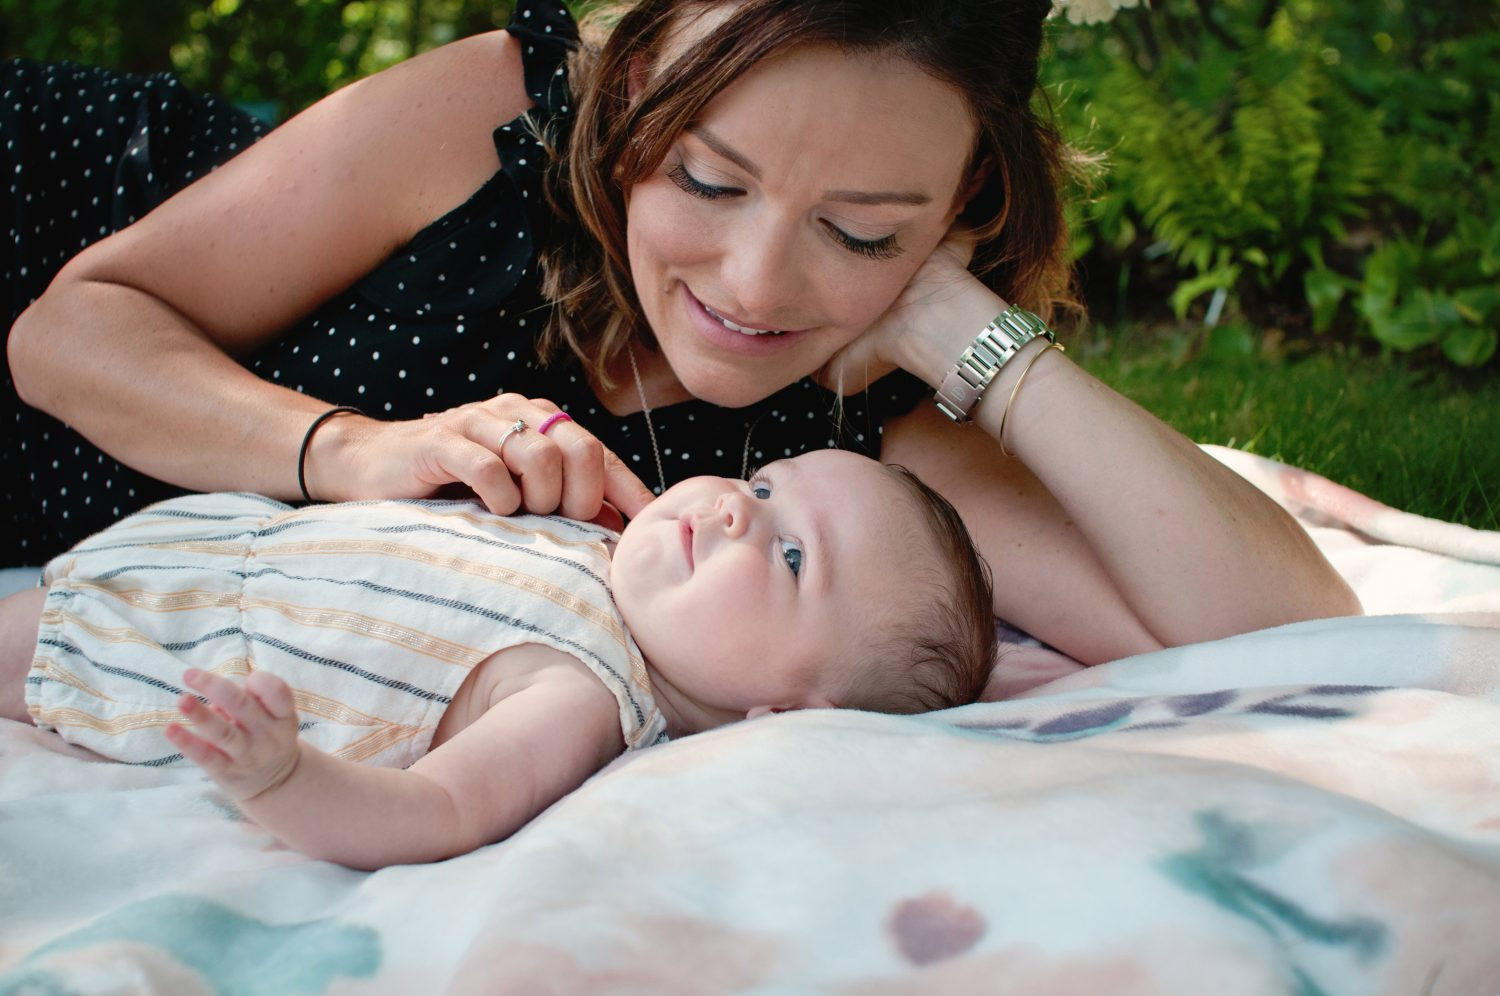 baby laying on blanket in grass with mother beside her smiling